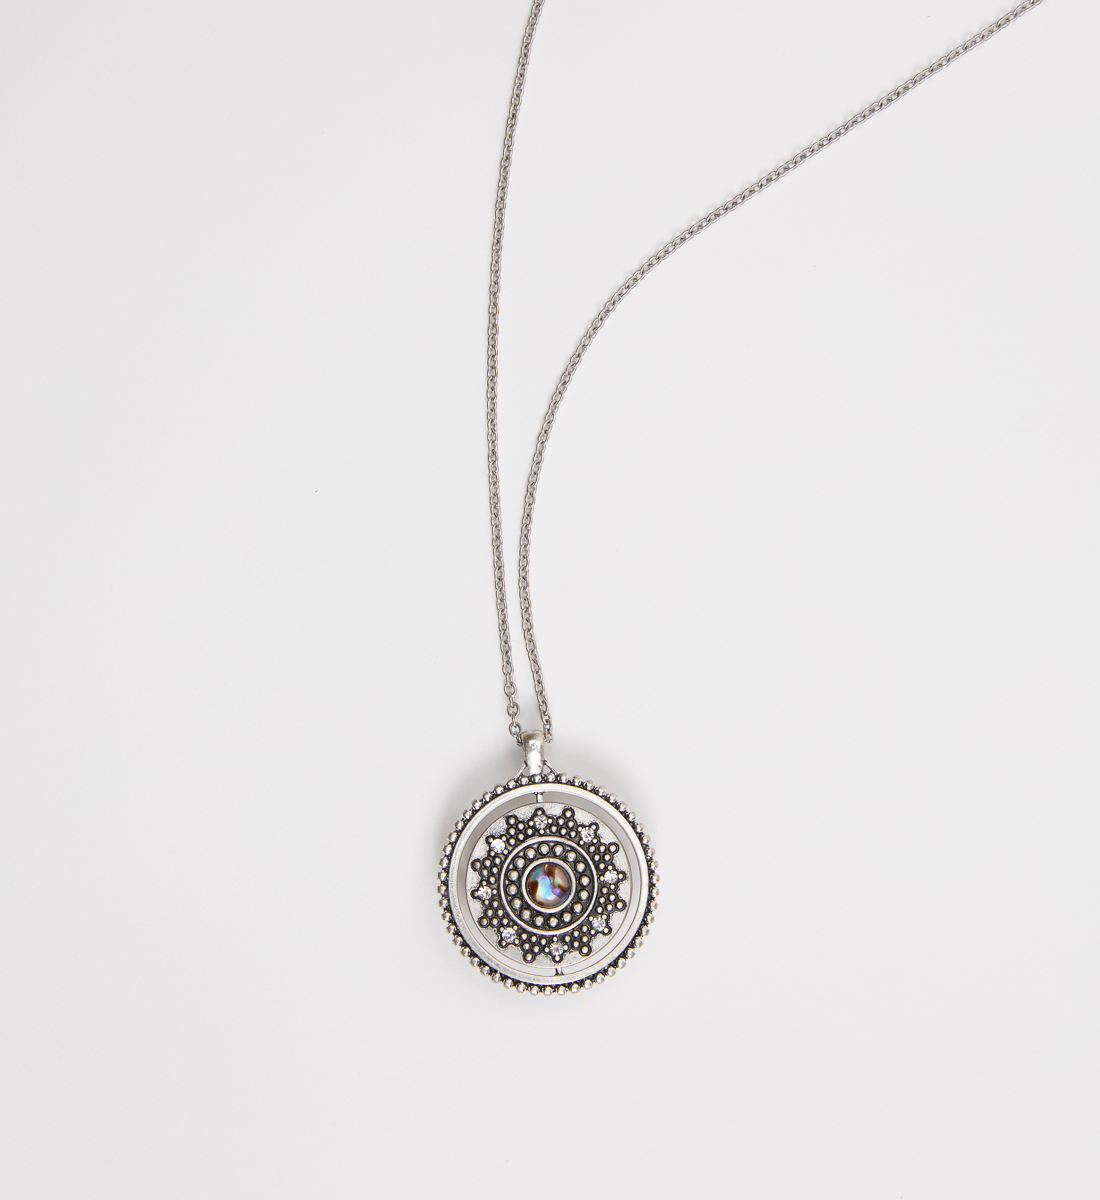 Silver-Tone Spinner Pendant Necklace,Silver Side